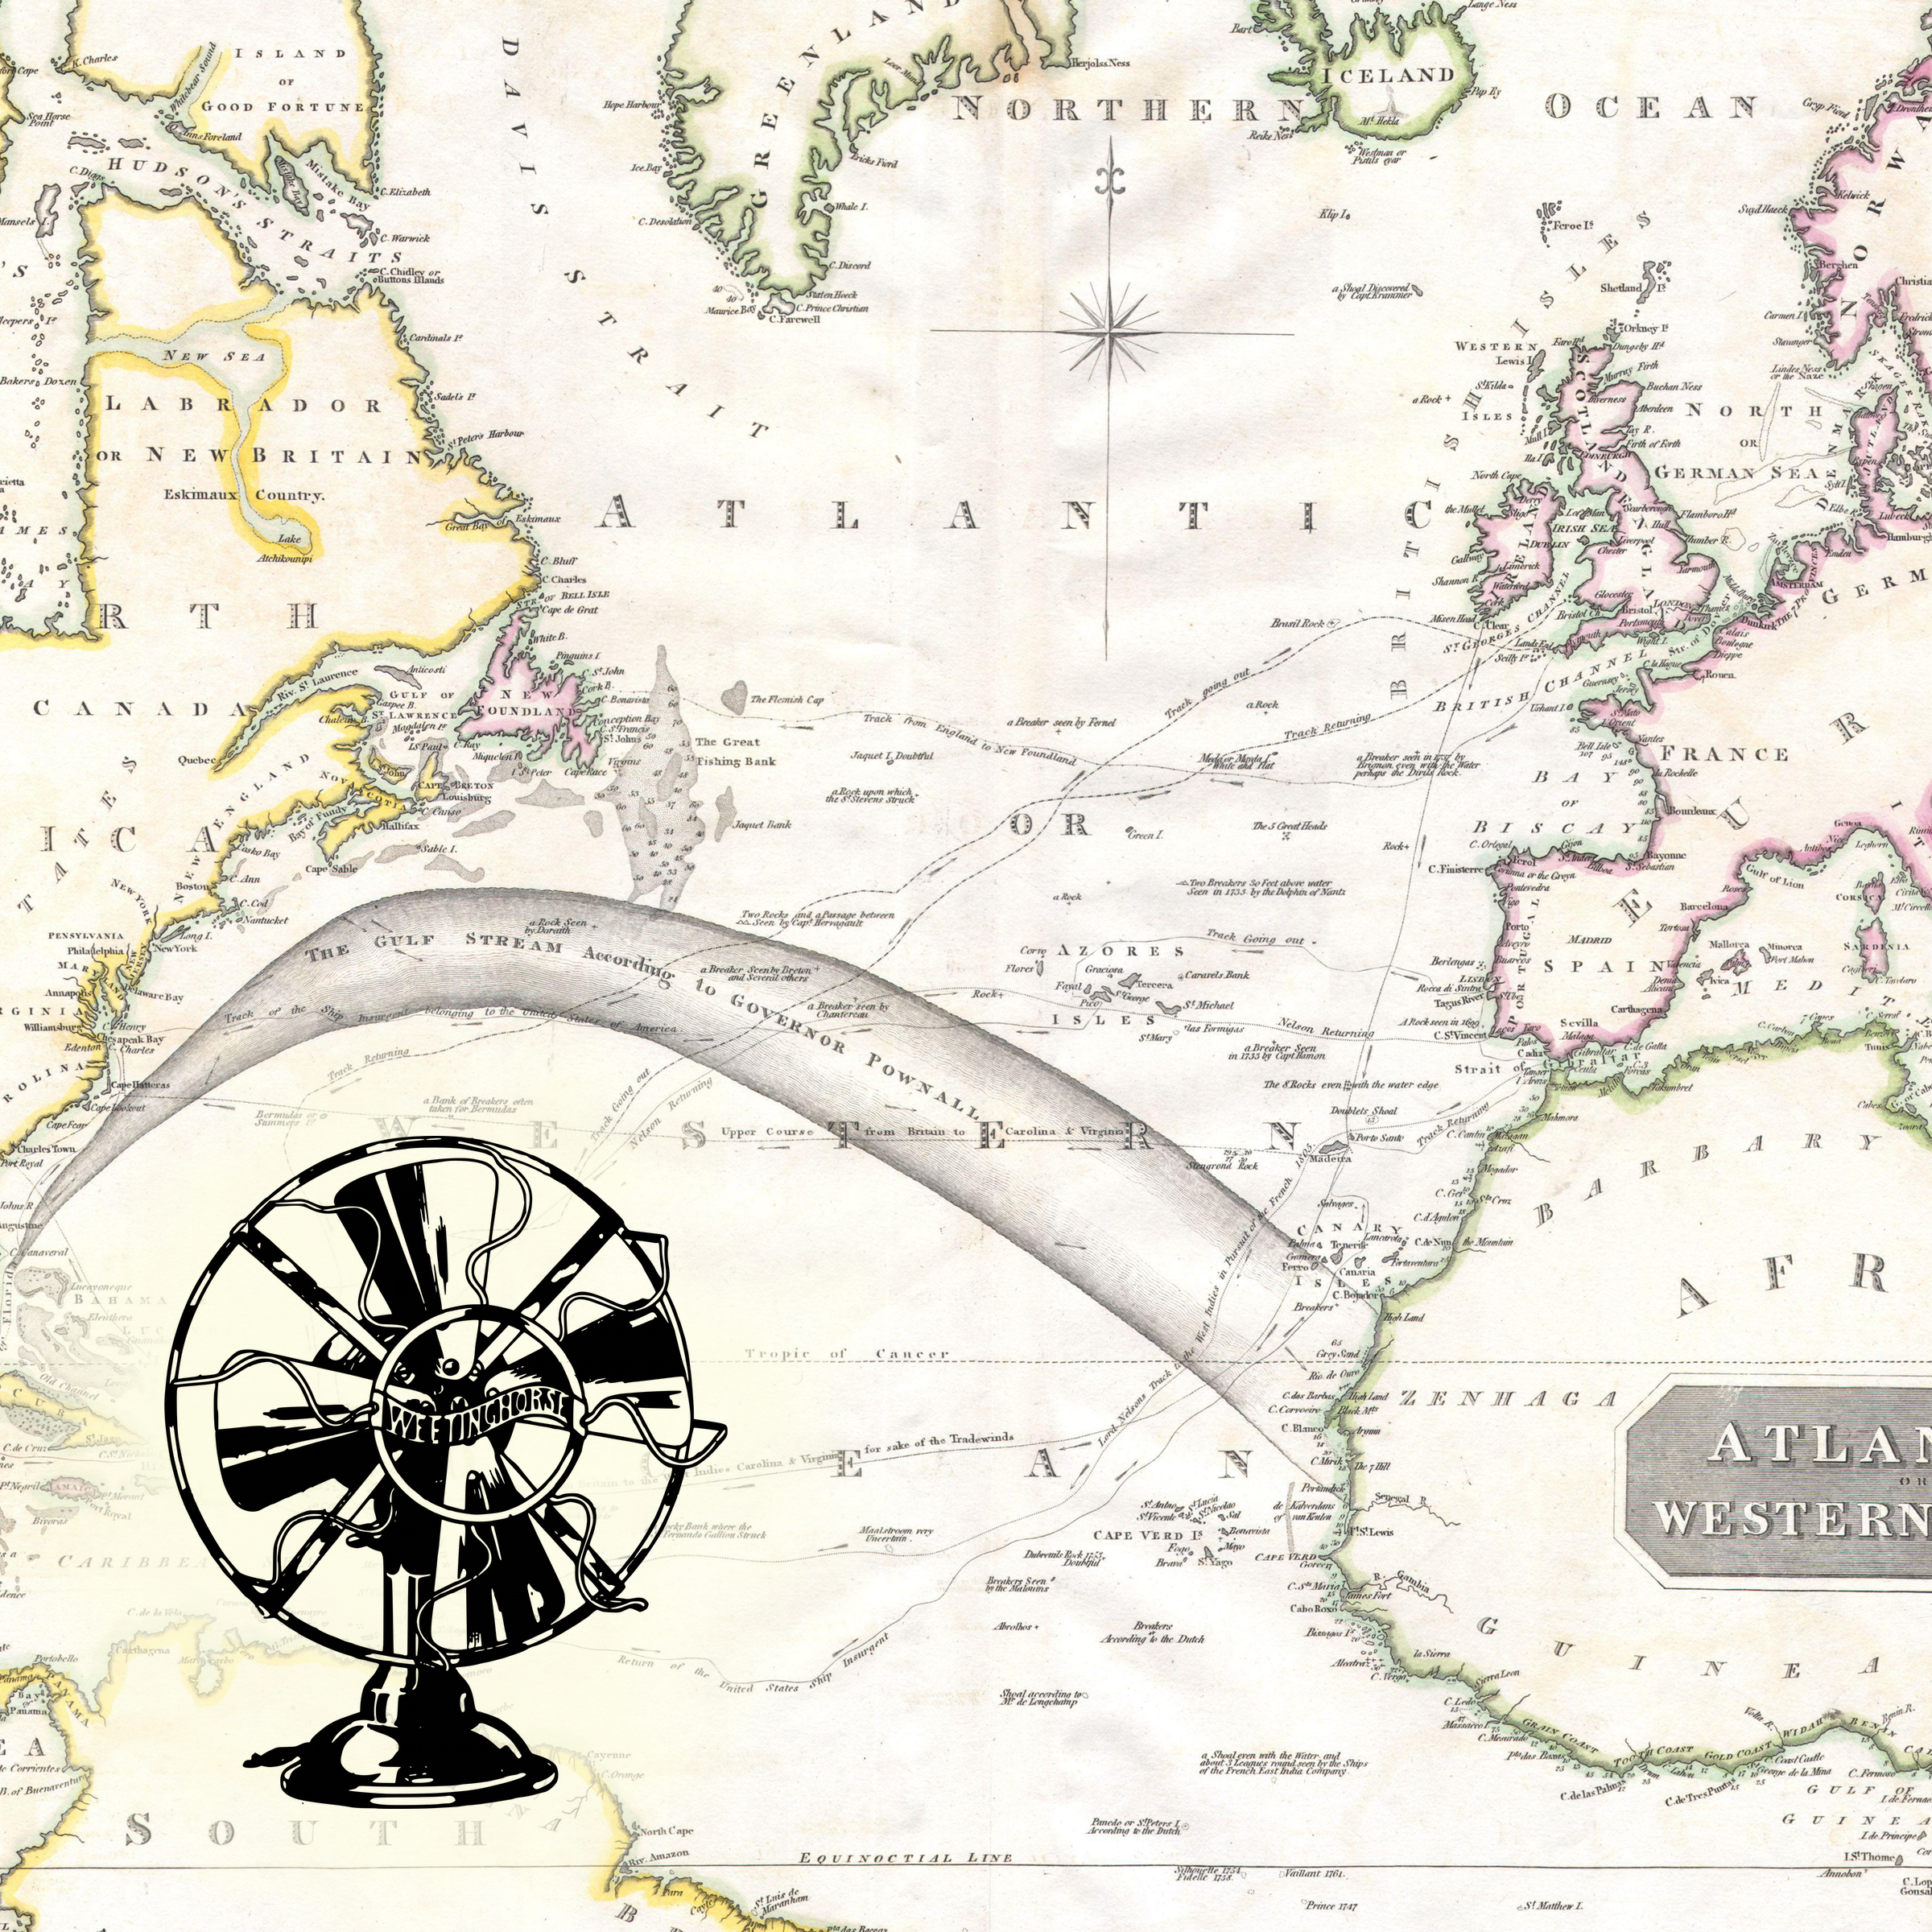 Episode 11's cover: an old map of the Atlantic Ocean.